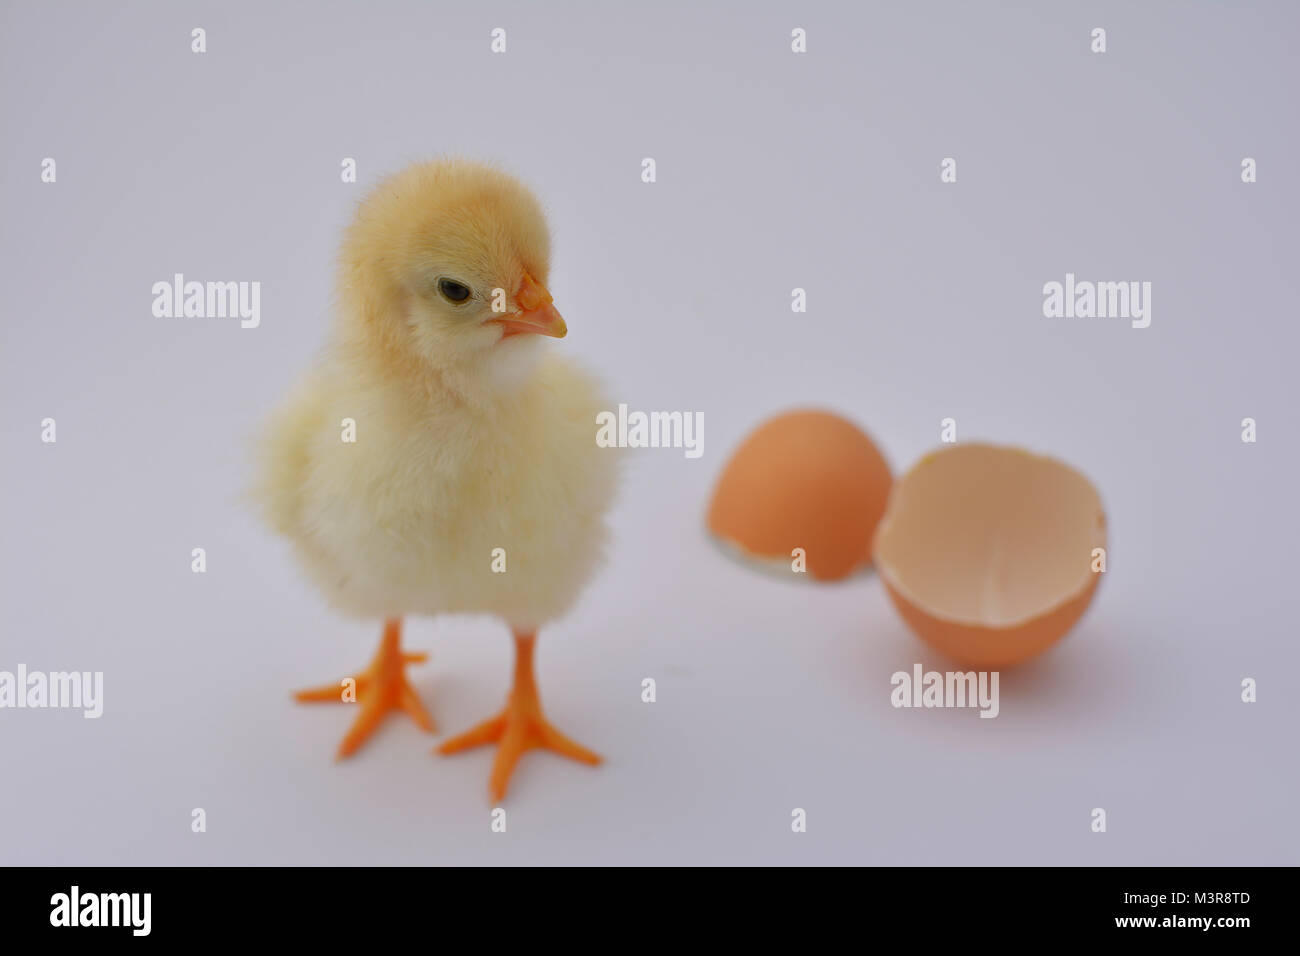 Newborn chicken chick playing and enjoying with broken egg on white background - Stock Image